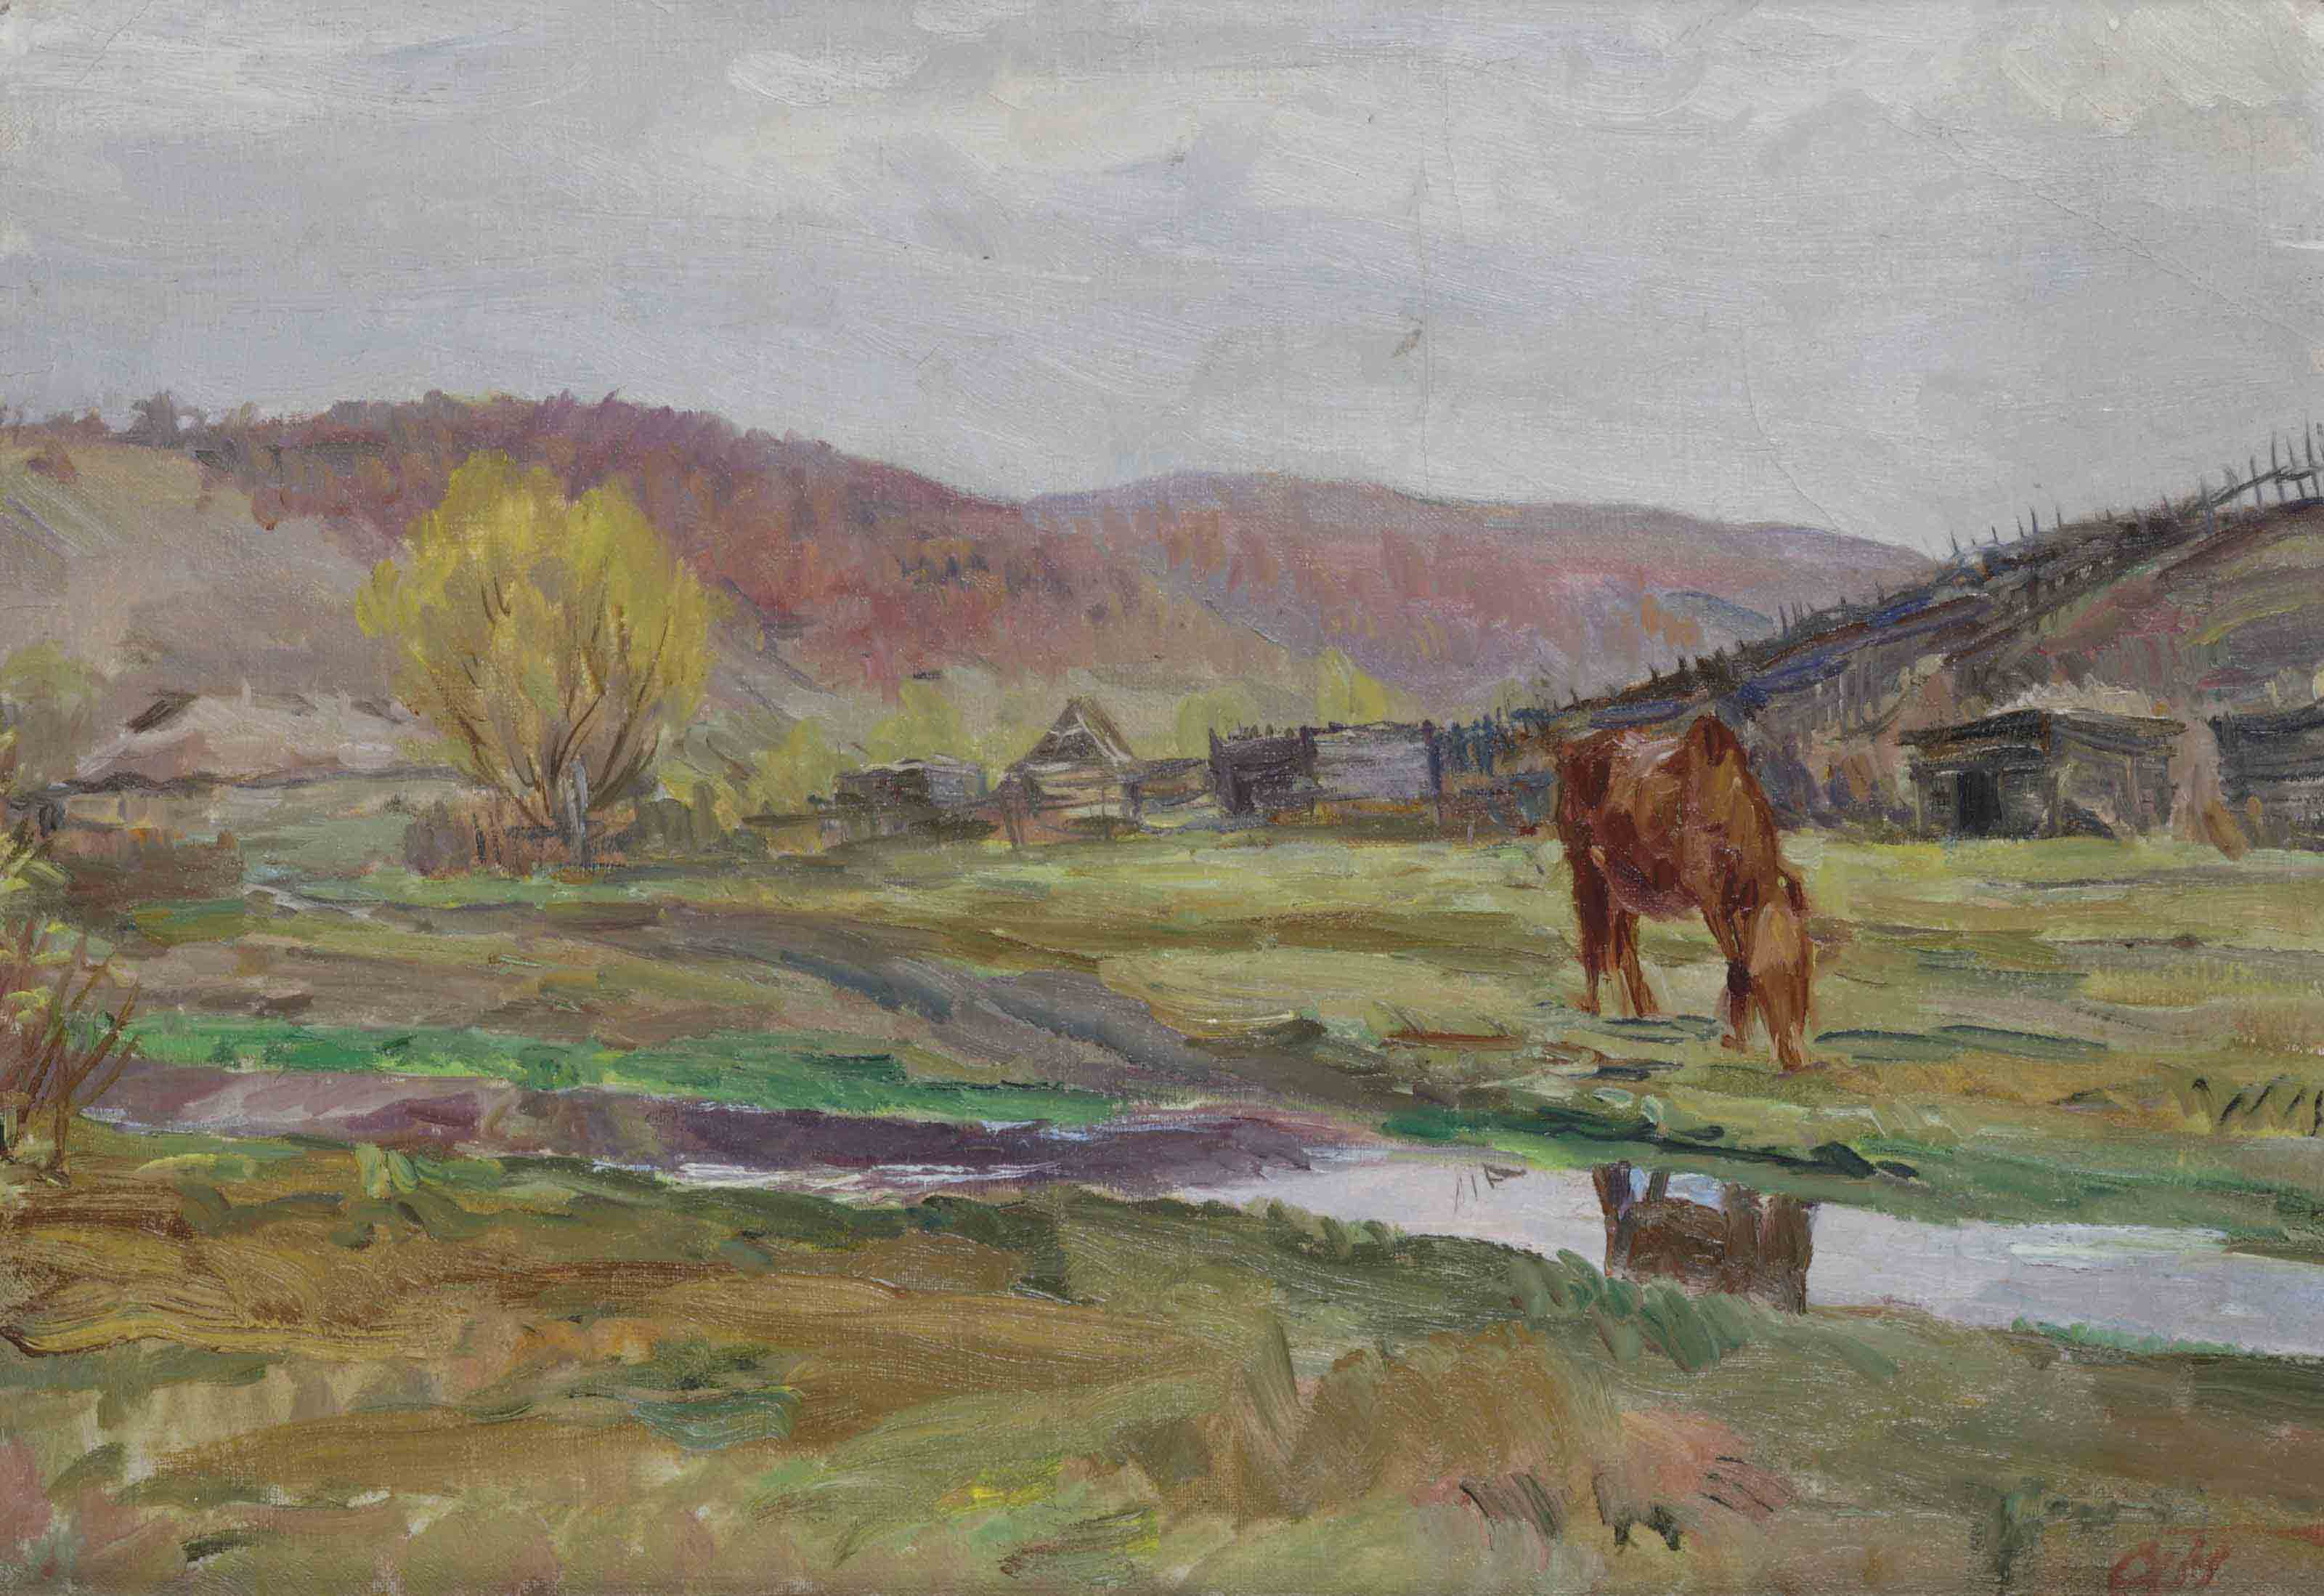 A horse grazing in a field along a river